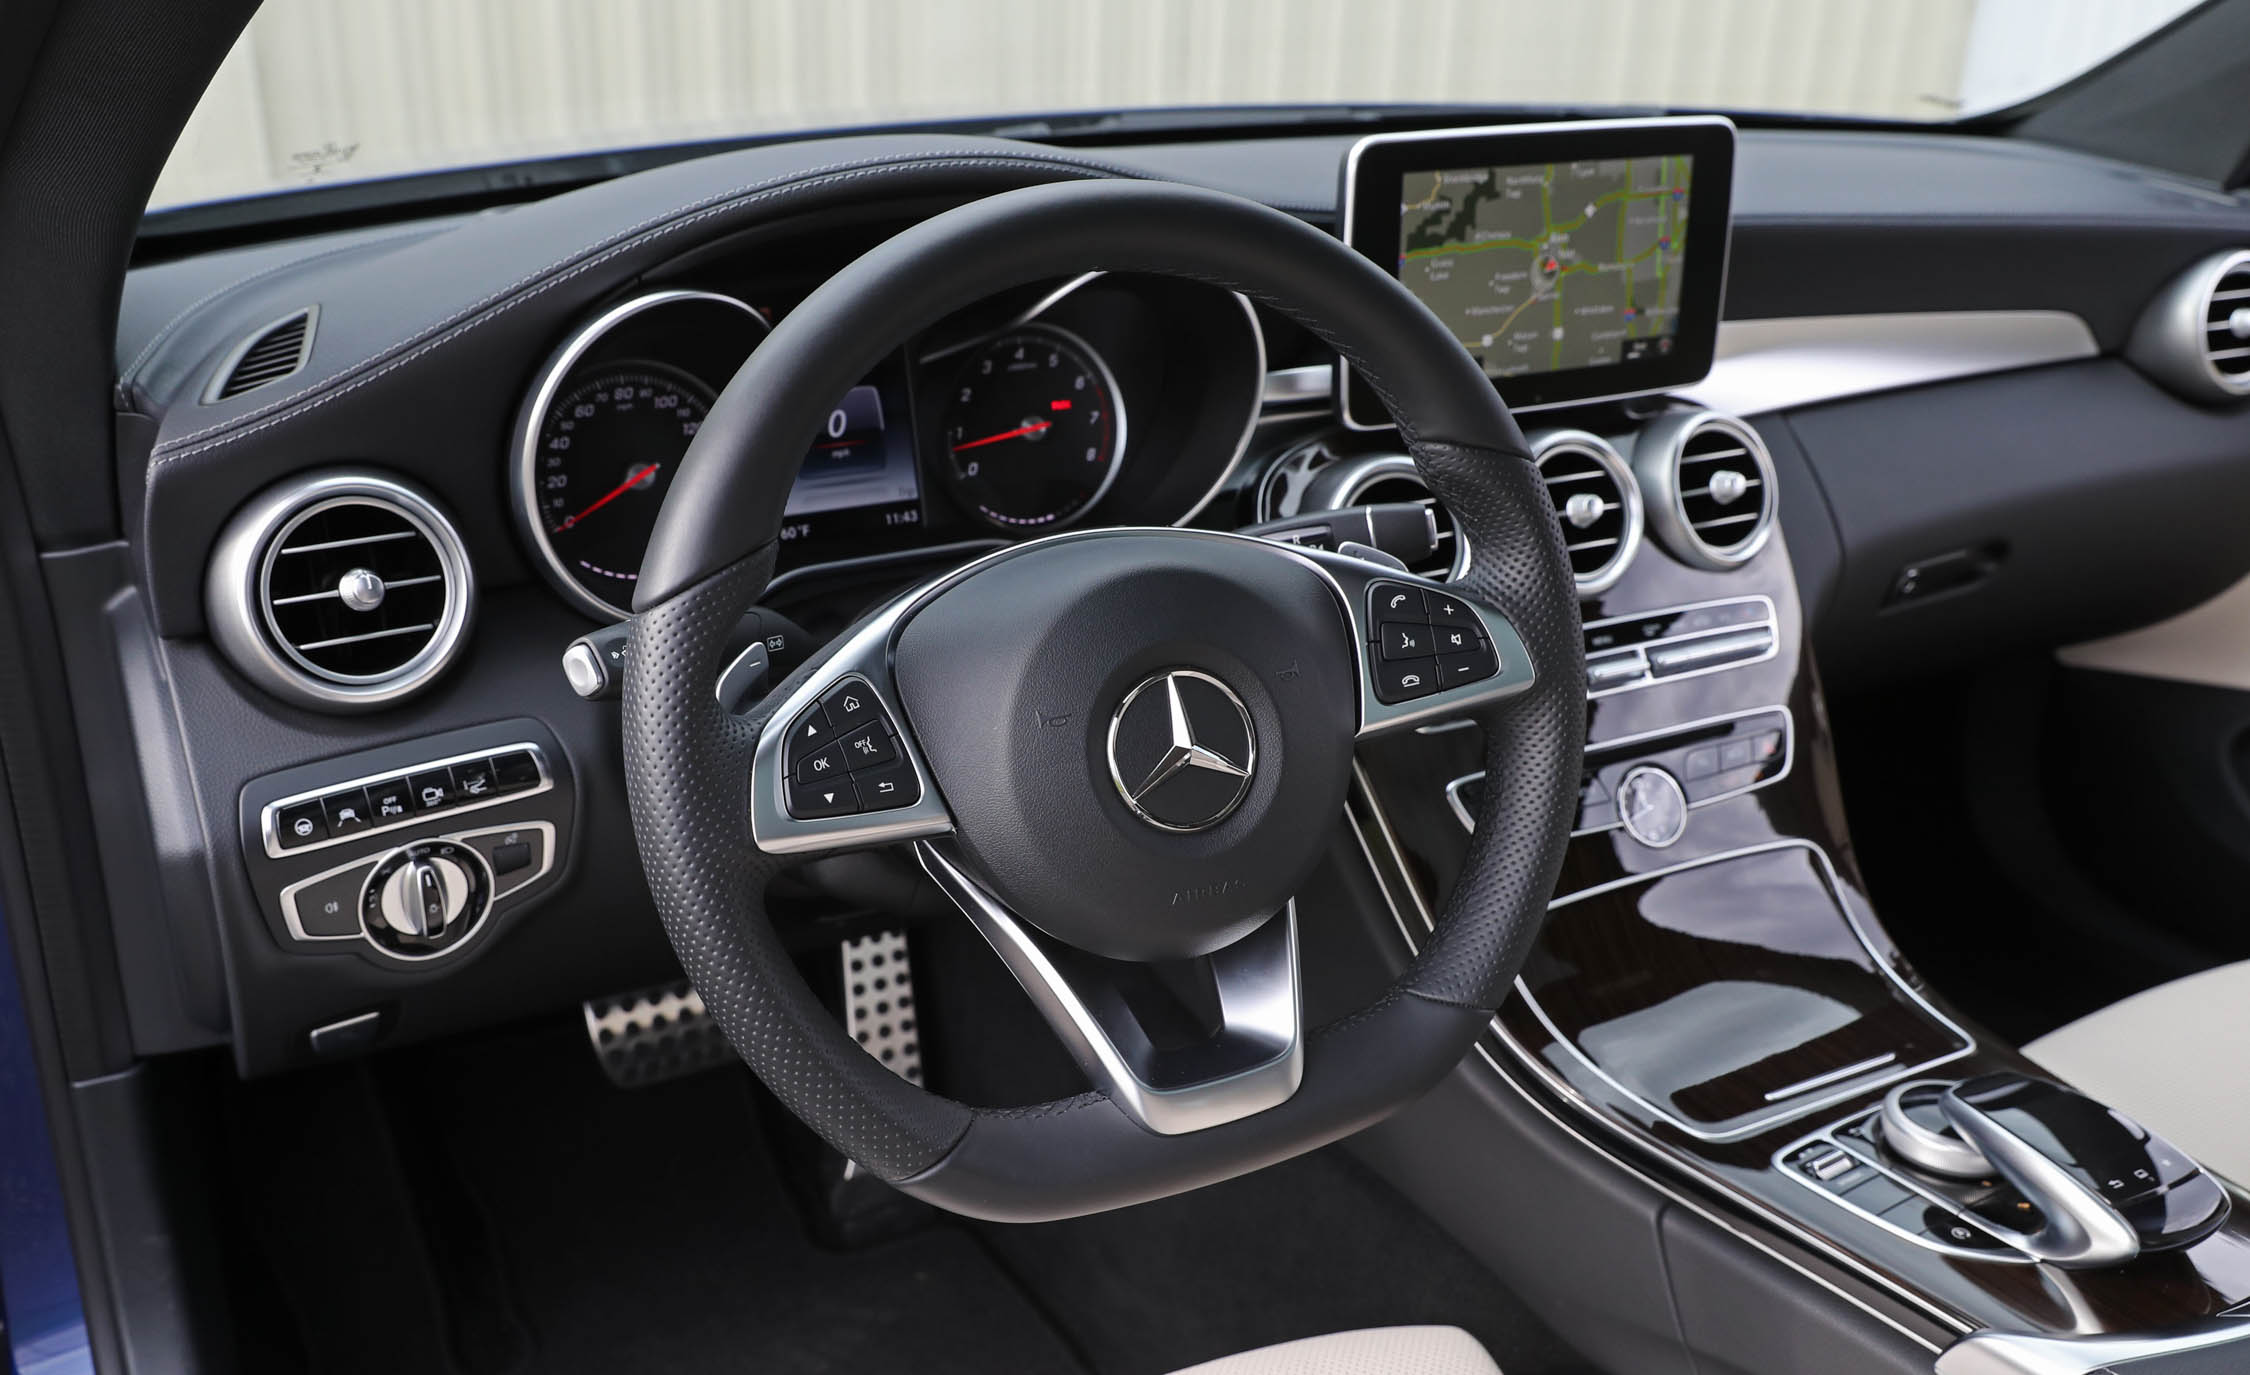 2017 Mercedes Benz C300 4MATIC Coupe Interior Steering Wheel (View 19 of 44)